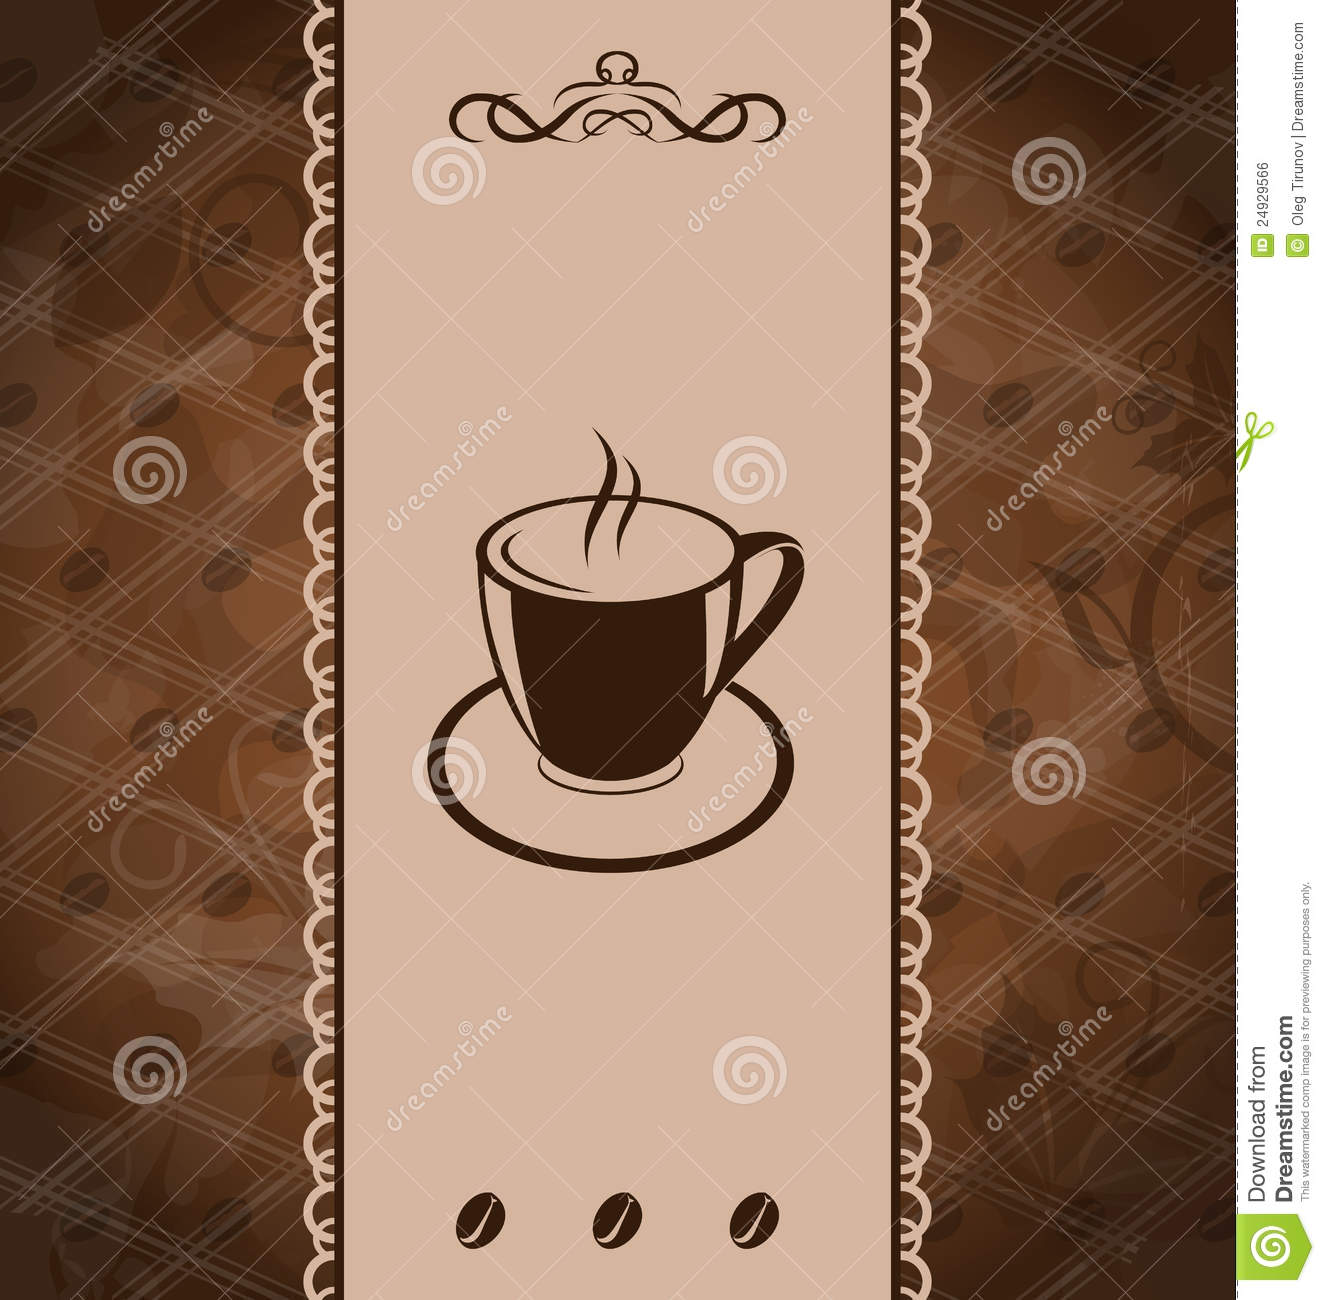 Vintage Background For Coffee Menu Royalty Free Stock